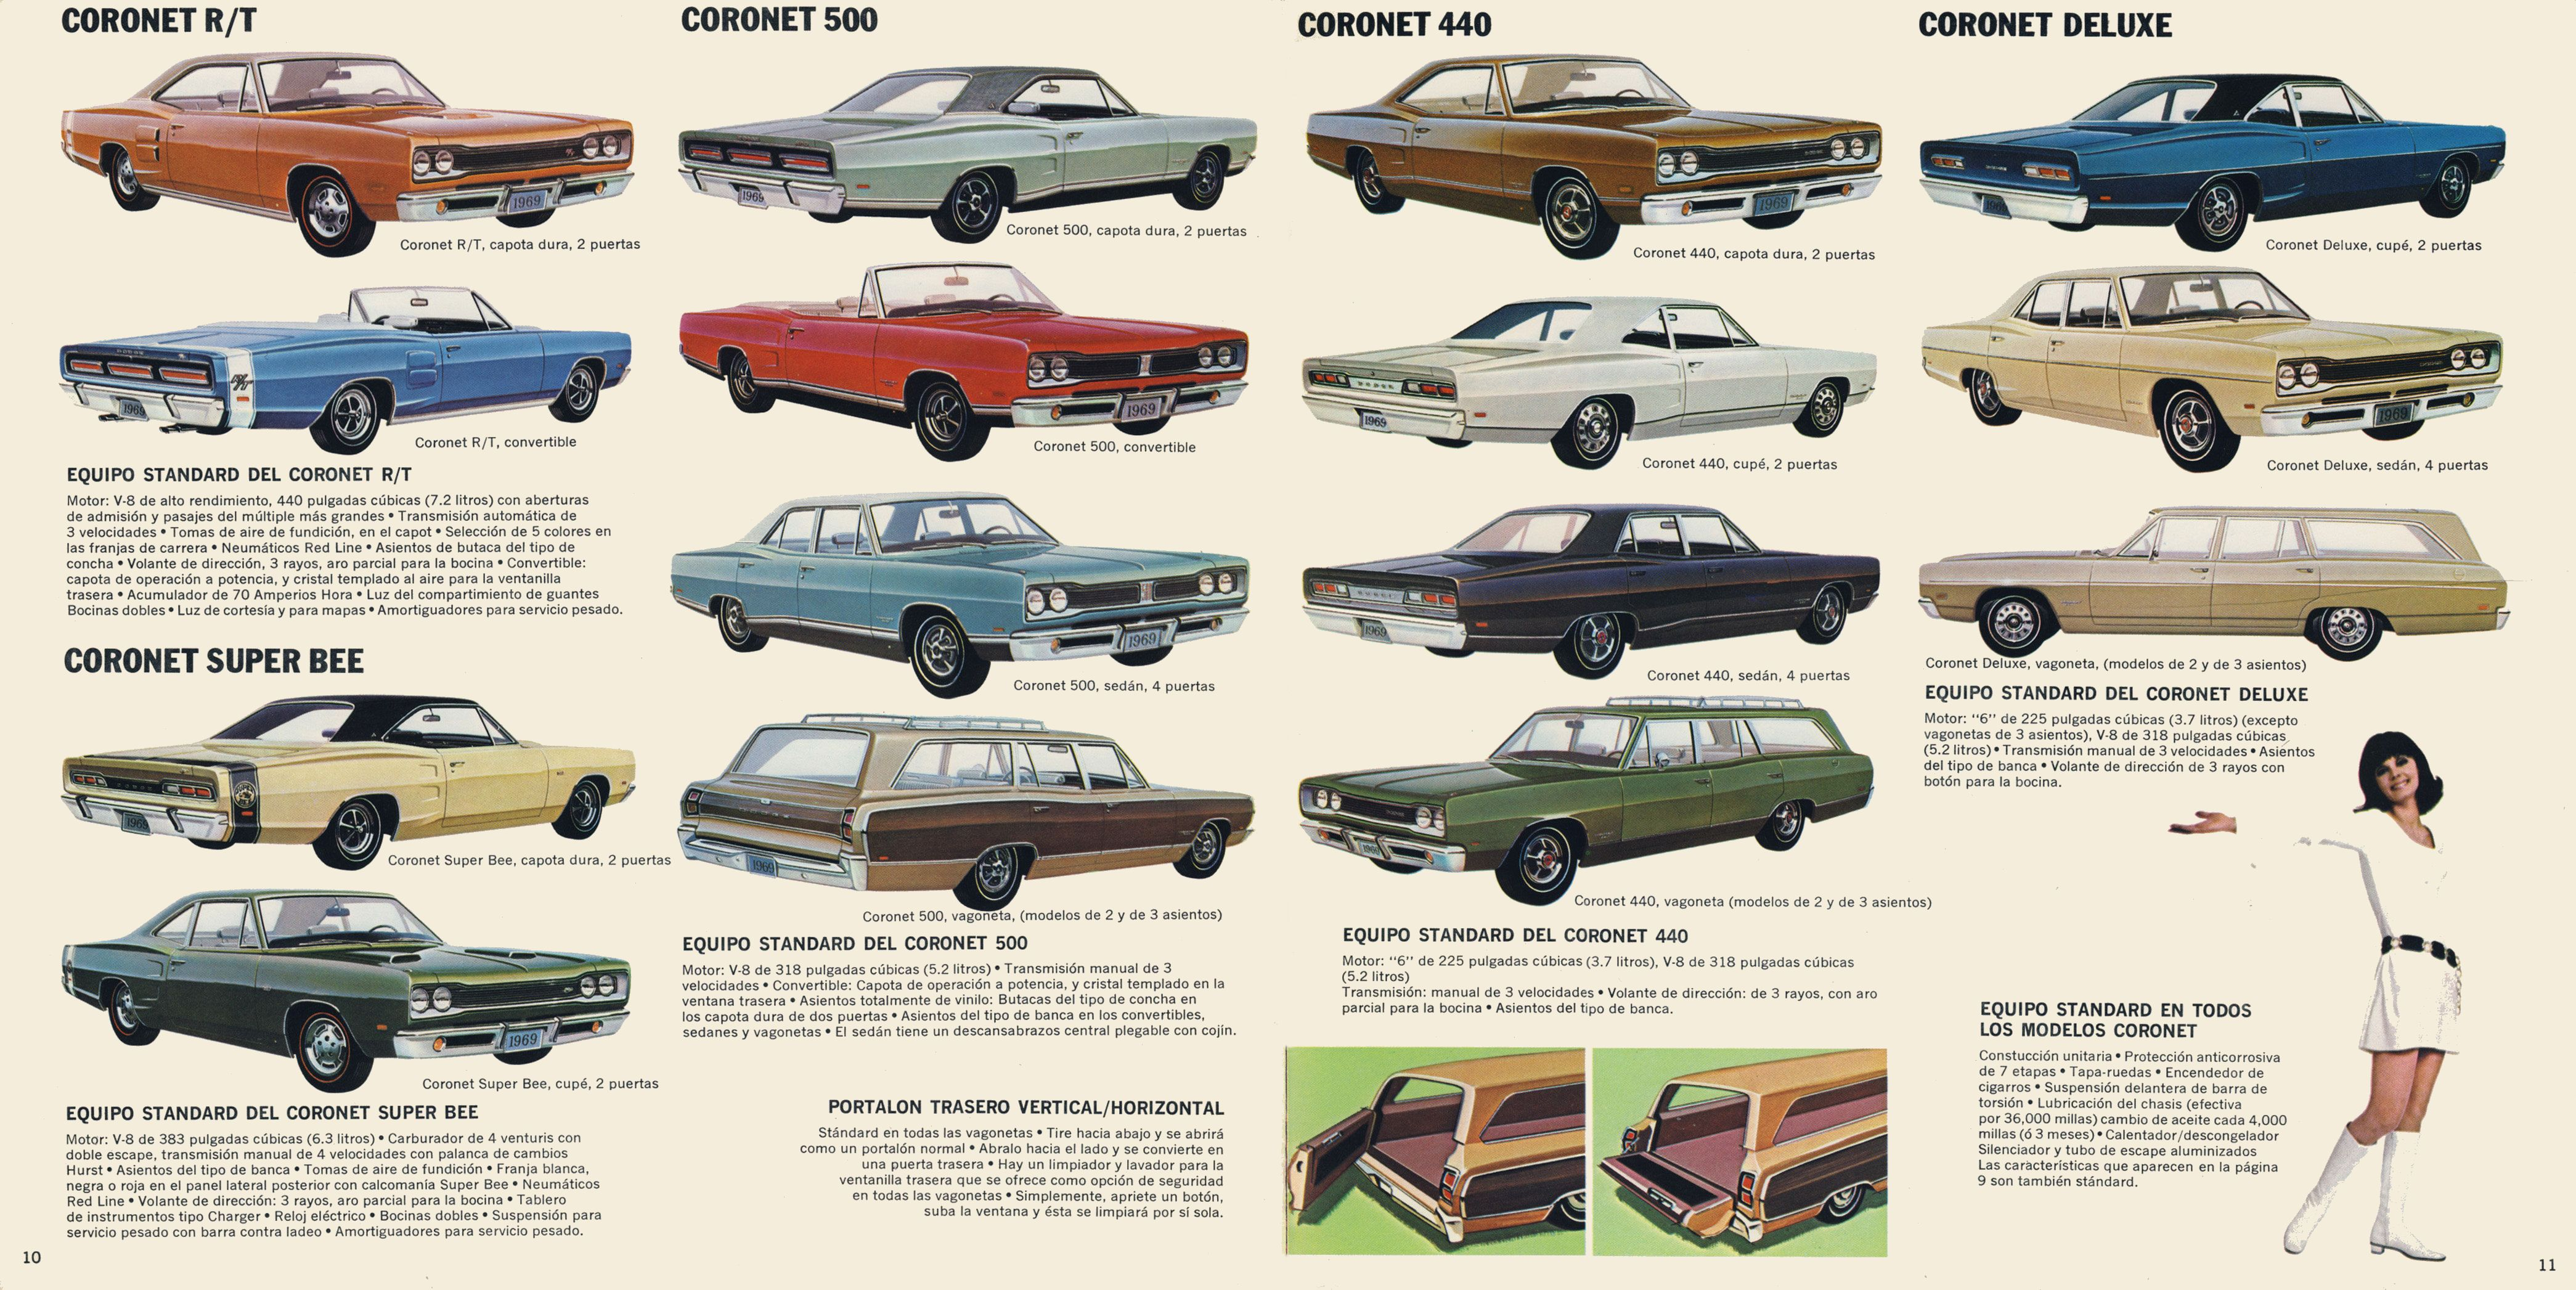 Watch further Chrysler C likewise 1967 Dodge Monaco And Polara besides 1336174 moreover 1976 Dodge Charger Overview C6505. on 1976 dodge royal monaco 4 door